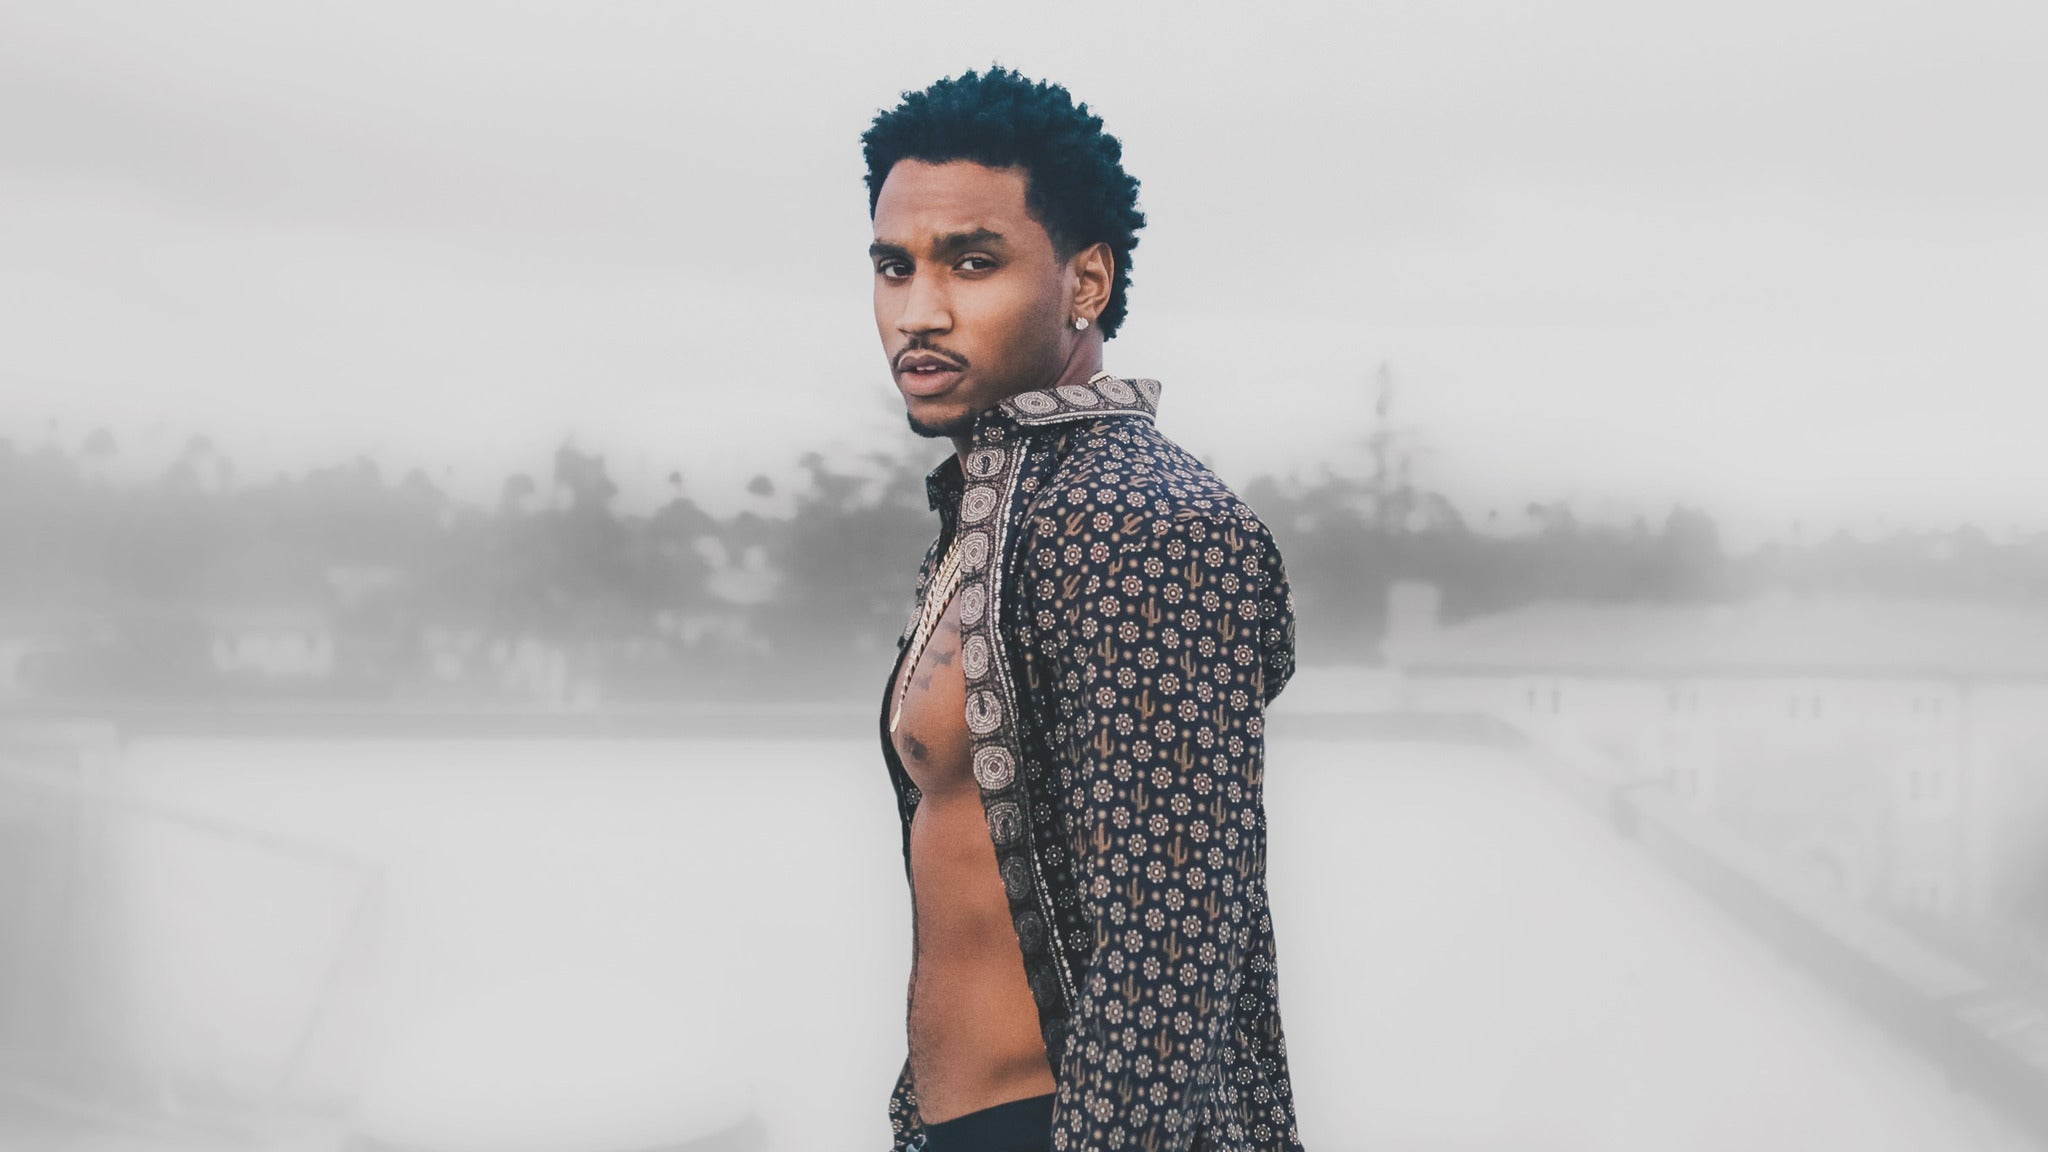 Trey Songz @ Ohm Nightclub 18+ W/Special Guests